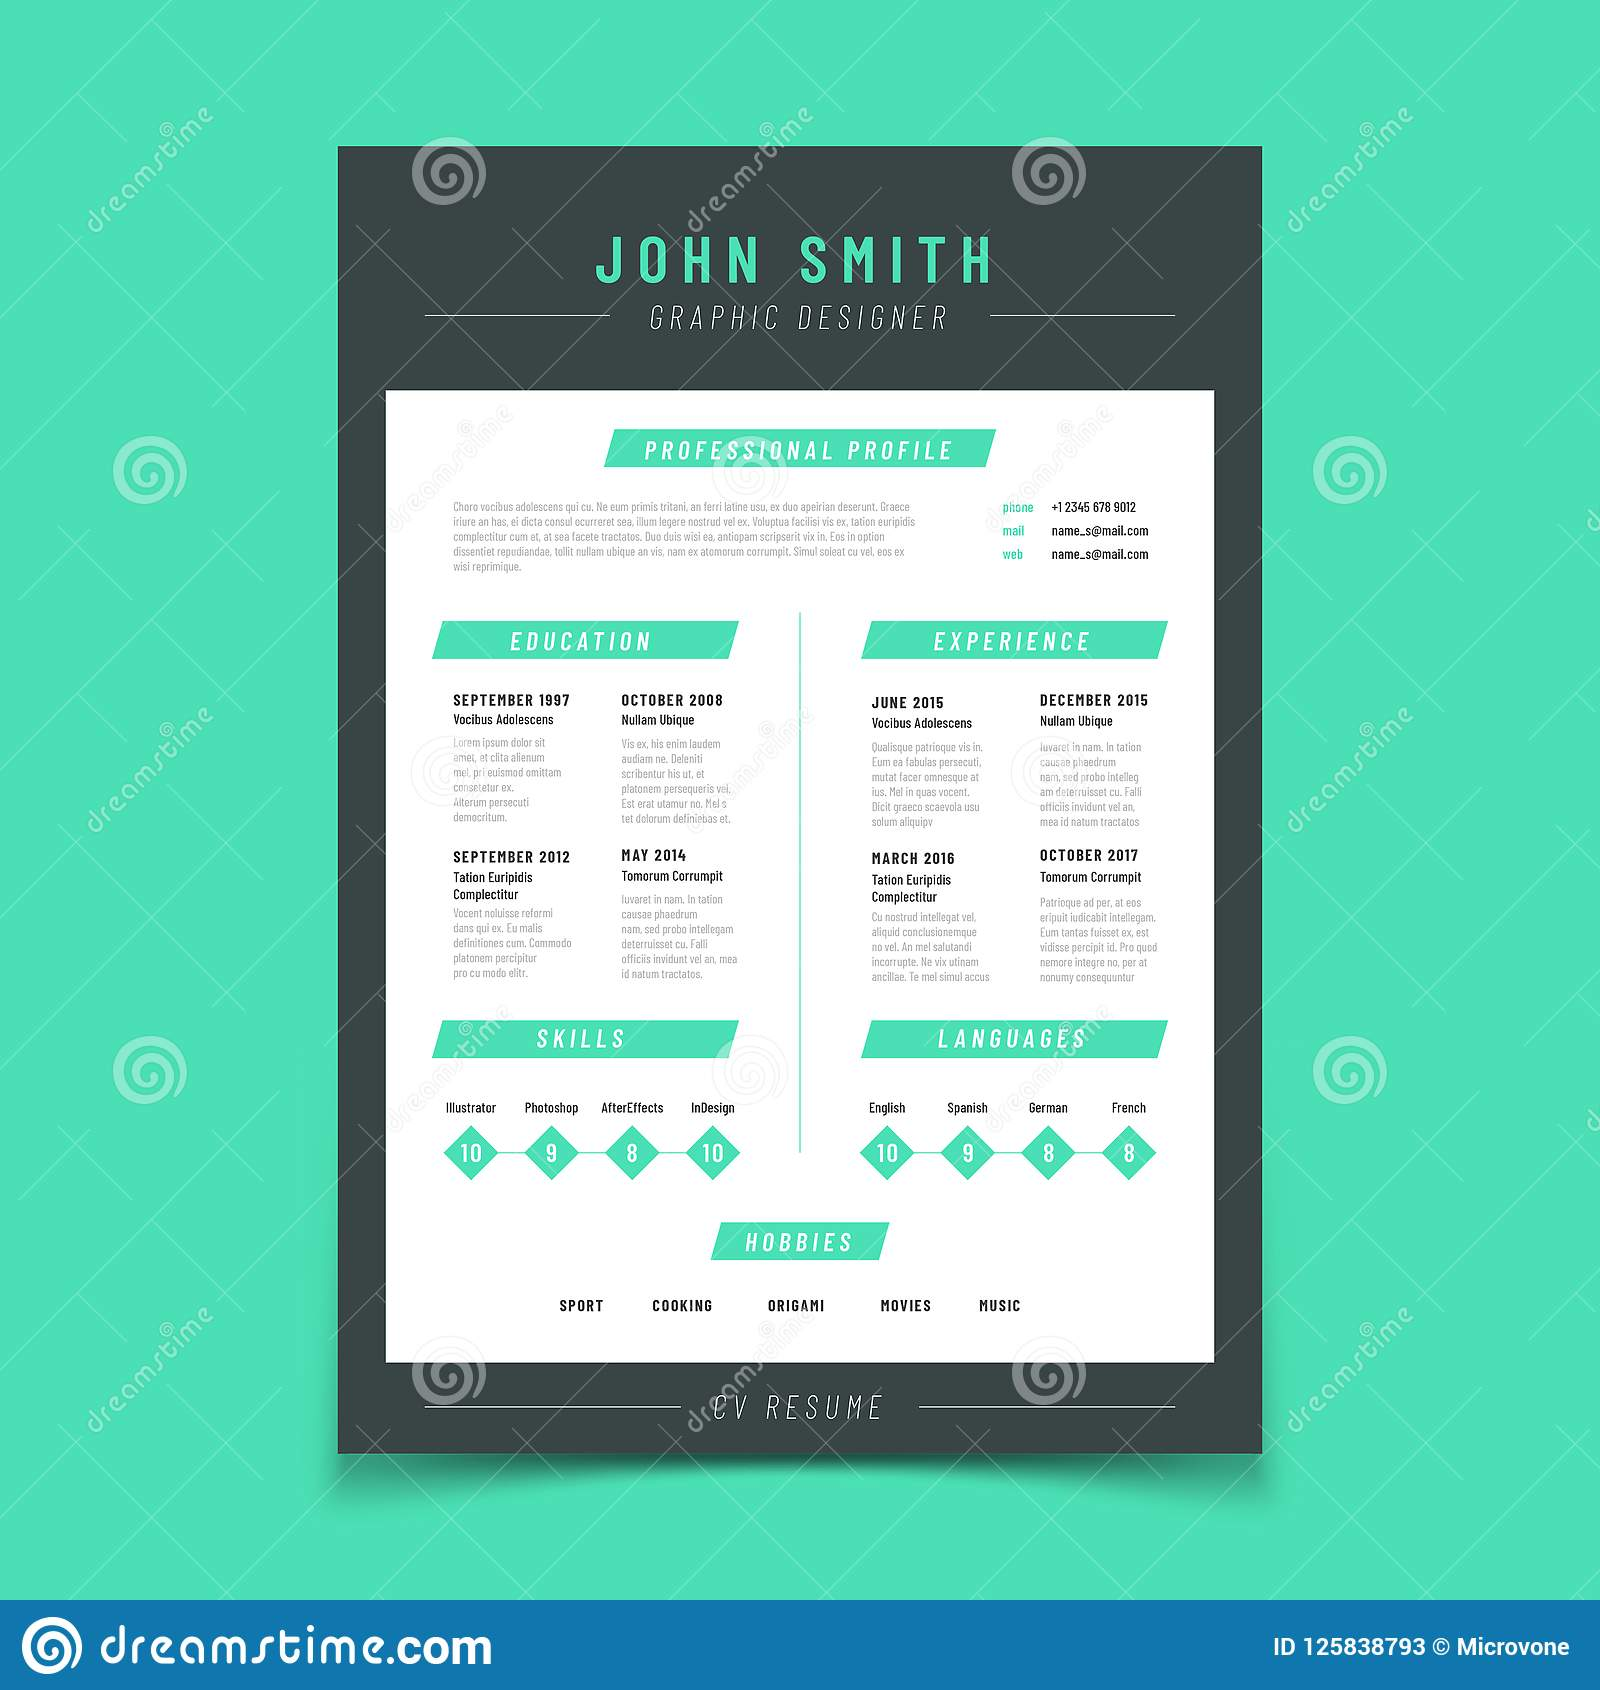 Resume Letter Personal Cv Sample With Professional Vitae And